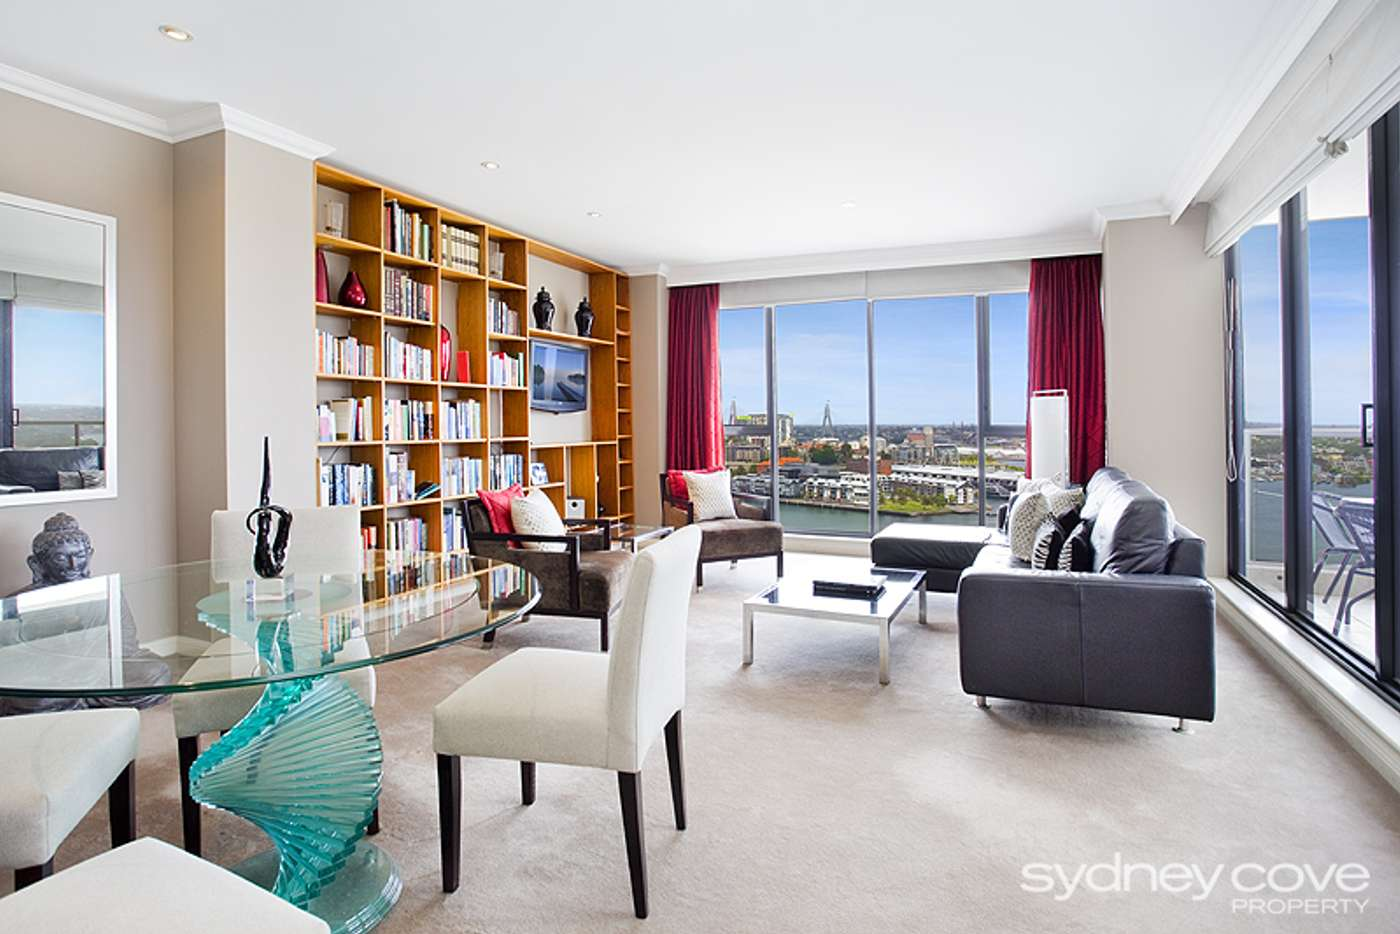 Main view of Homely apartment listing, 183 Kent St, Sydney NSW 2000